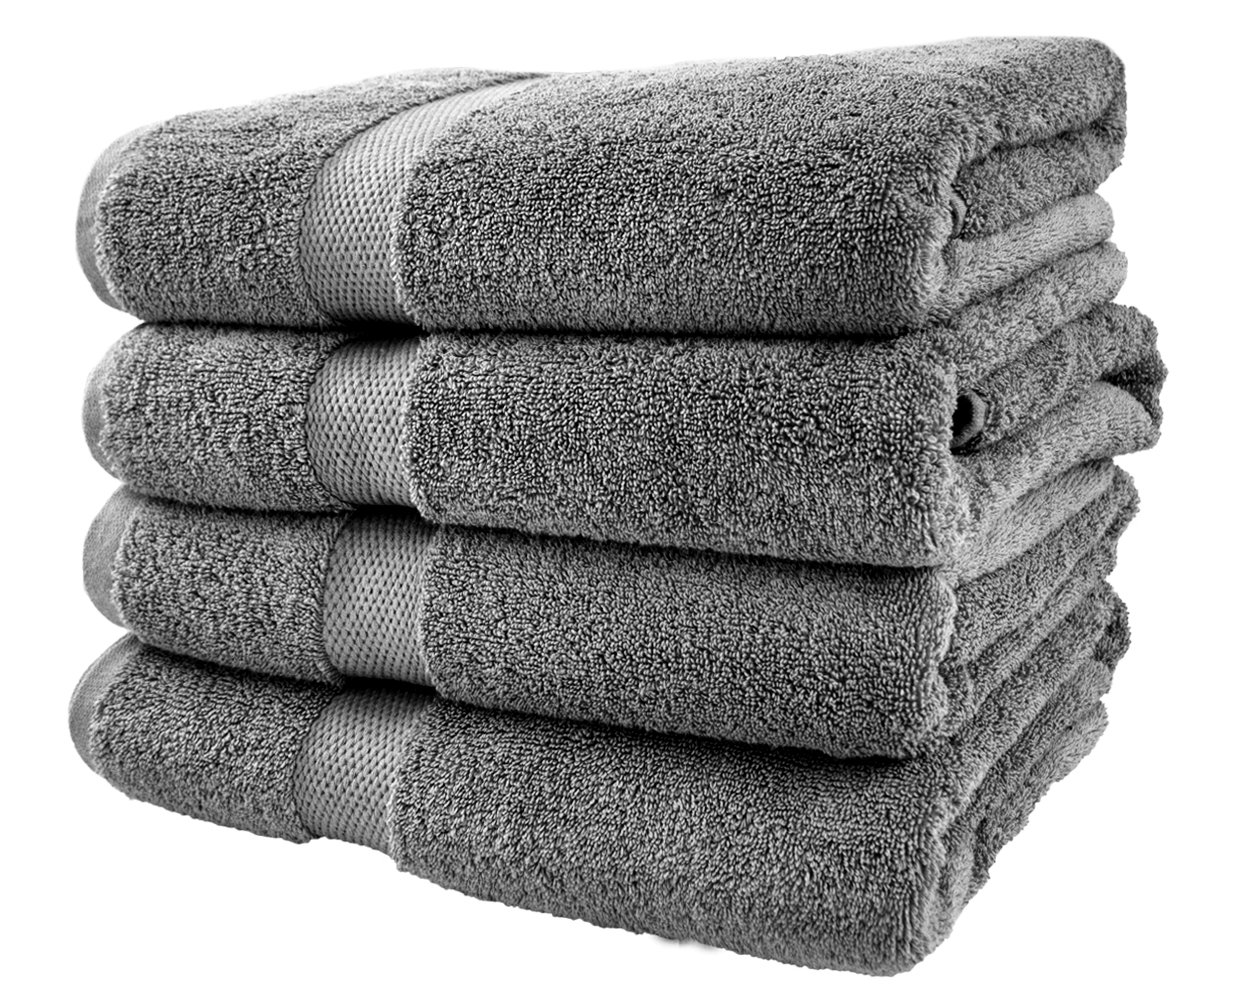 Cotton & Calm Exquisitely Plush and Soft Bath Towel Set, Grey - 4 Large Bath Towels Set - Spa Resort and Hotel Quality, Super Absorbent 100% Cotton Luxury Bathroom Towels